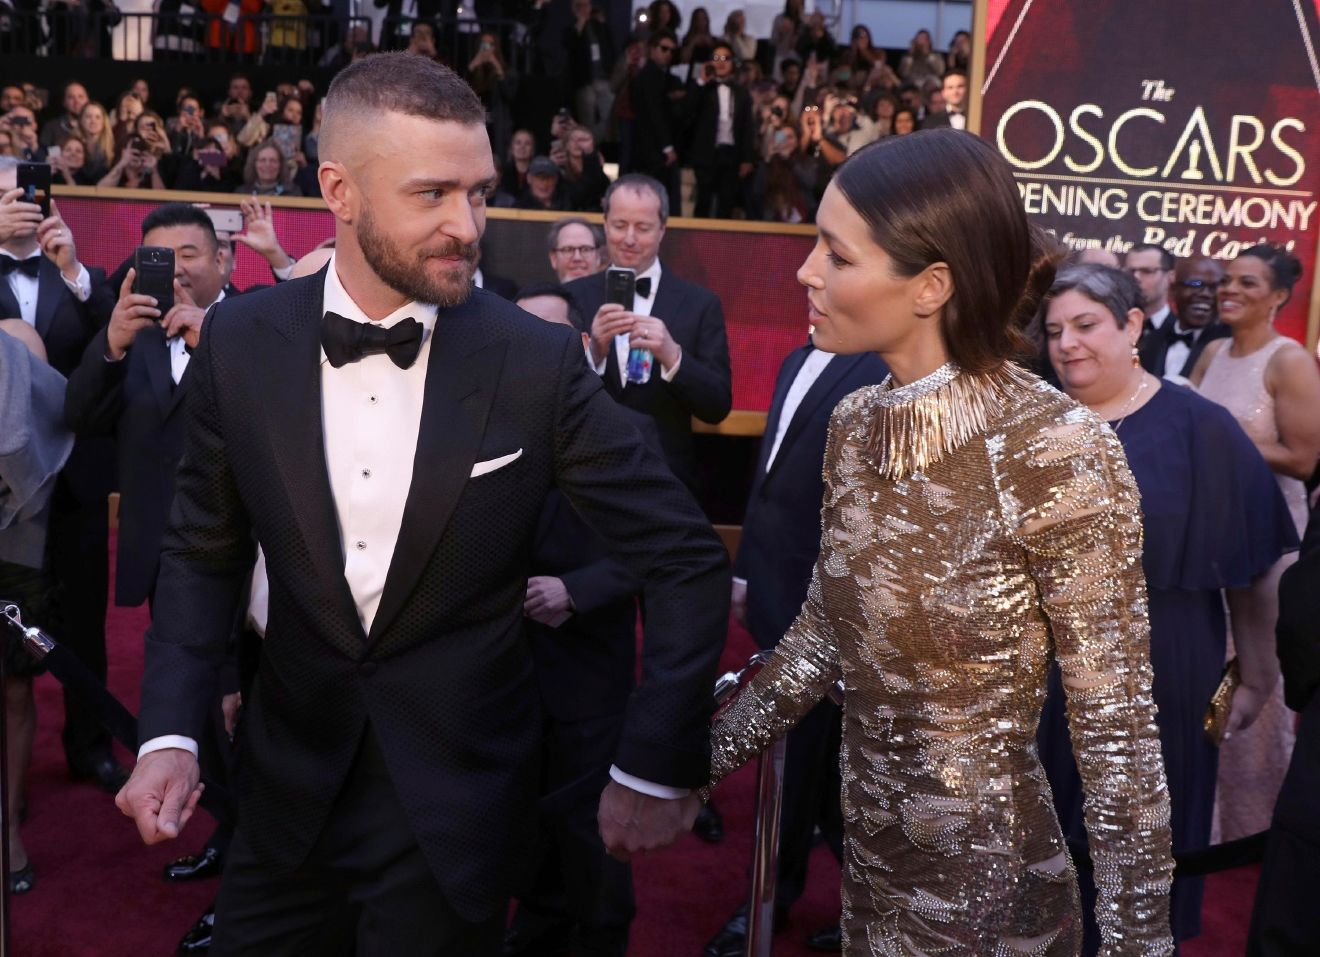 Justin Timberlake, left, and Jessica Biel arrive at the Oscars on Sunday, Feb. 26, 2017, at the Dolby Theatre in Los Angeles. (Photo by Matt Sayles/Invision/AP)